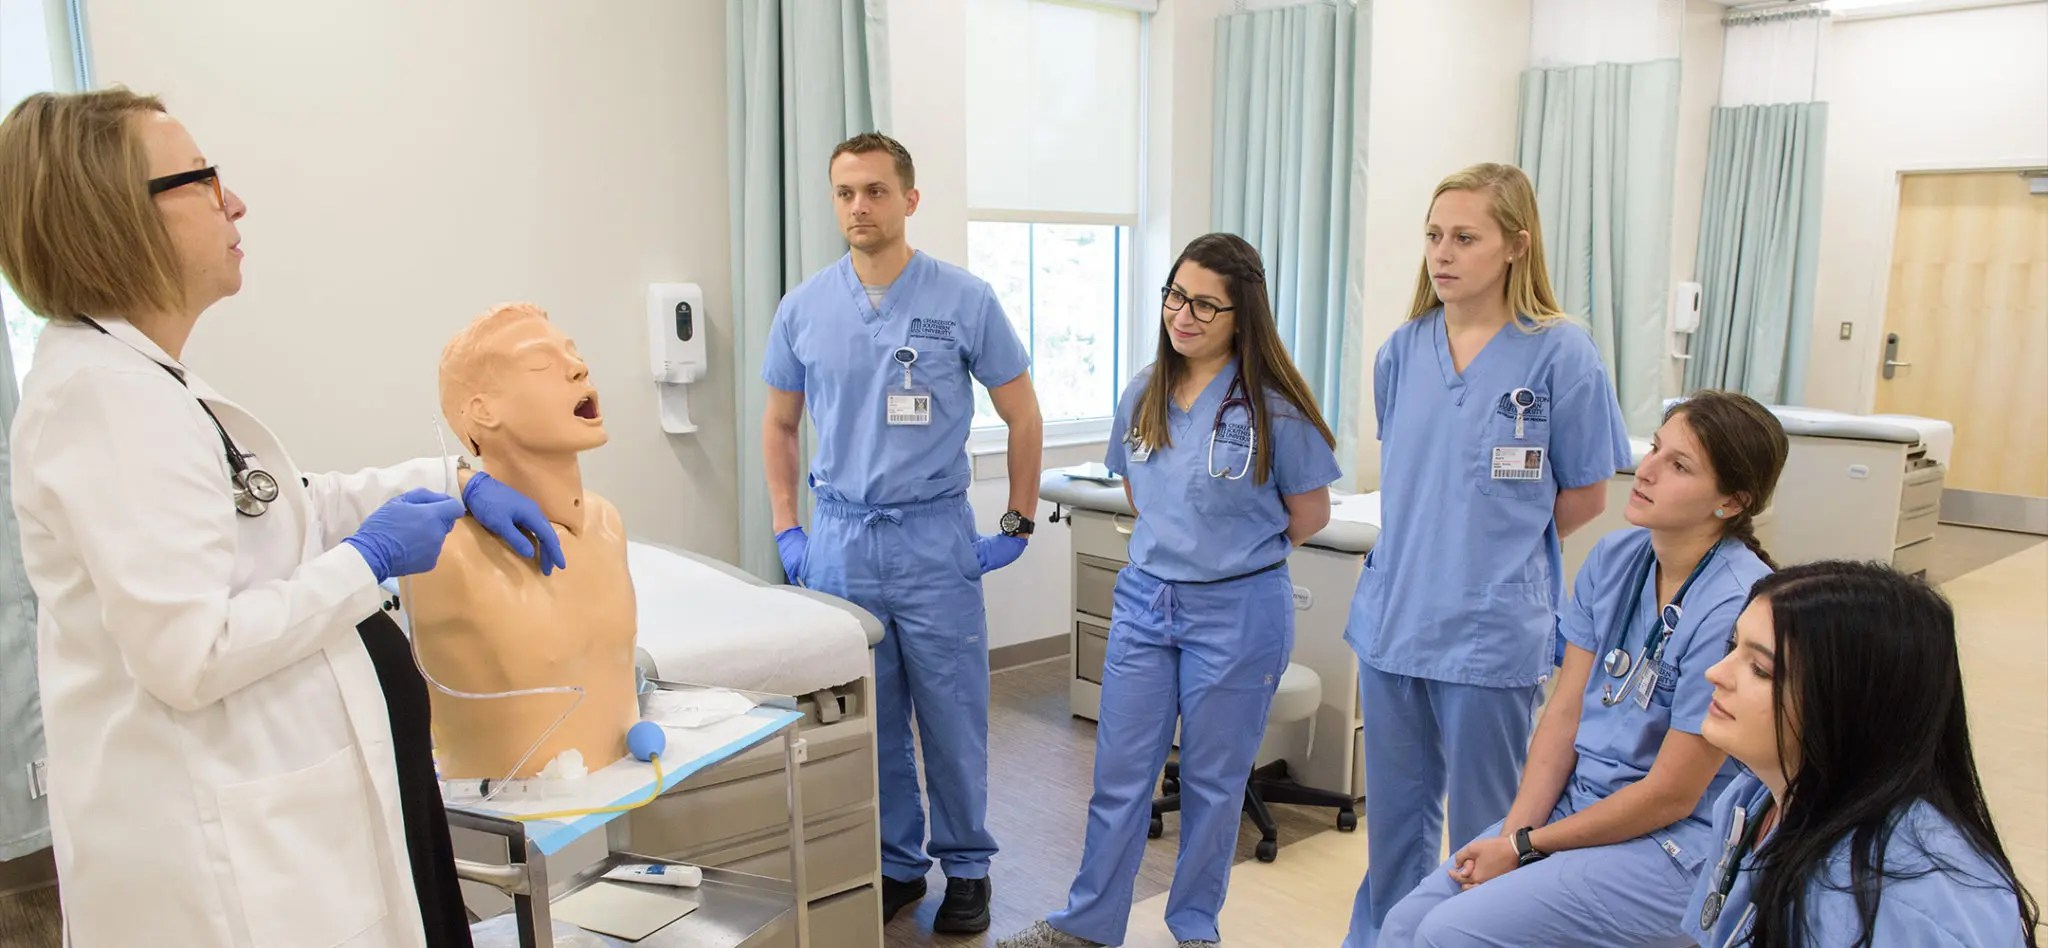 Physician Assistant students in a classroom lab listening to a professor explain how to insert a tube into a human dummy.